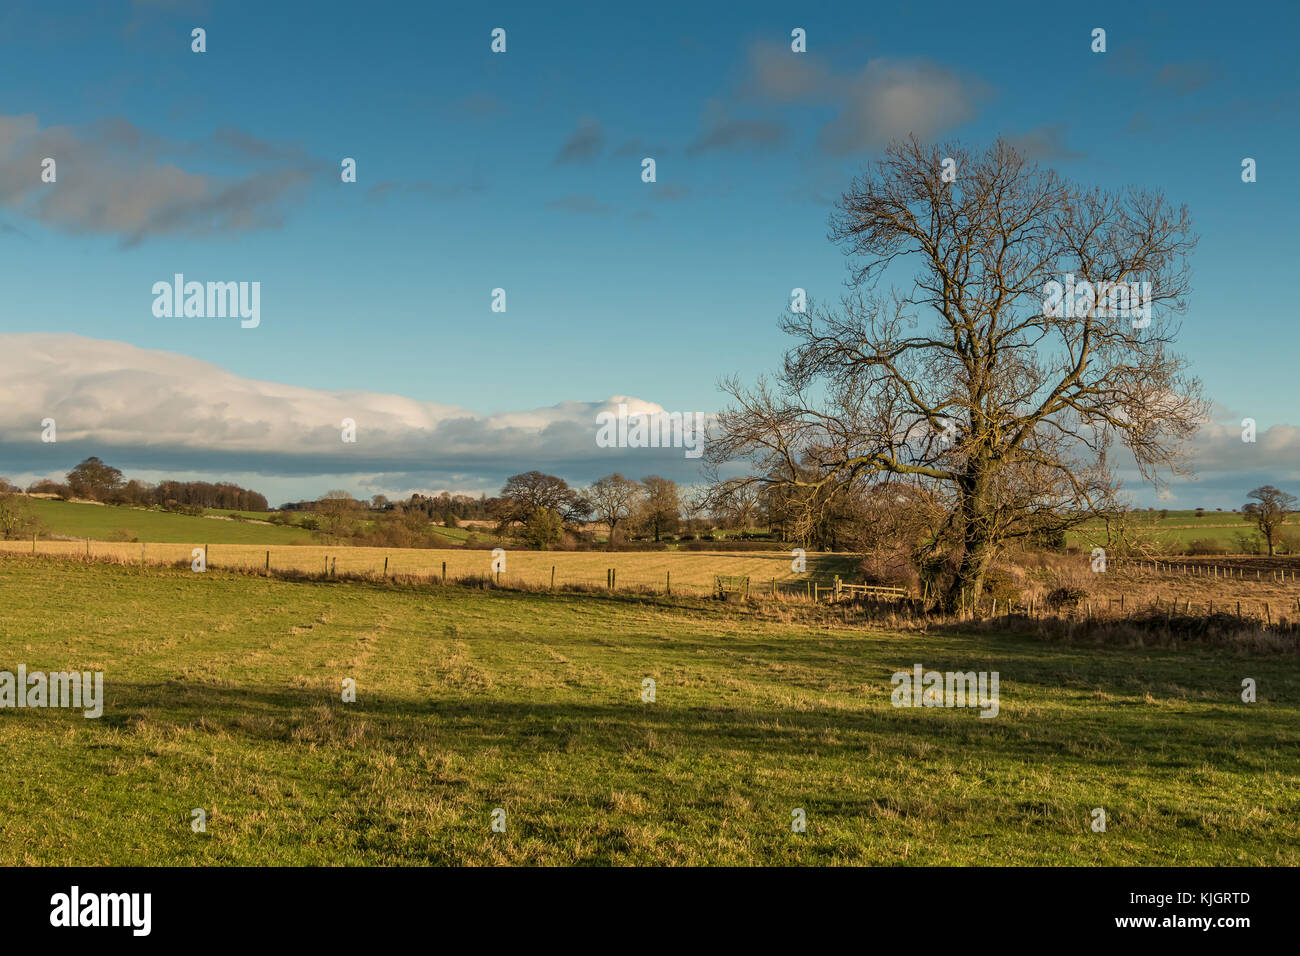 Teesdale landscape, November 2017, looking east from Hutton Magna, single bare ash tree, farmland, sheep grazing, - Stock Image